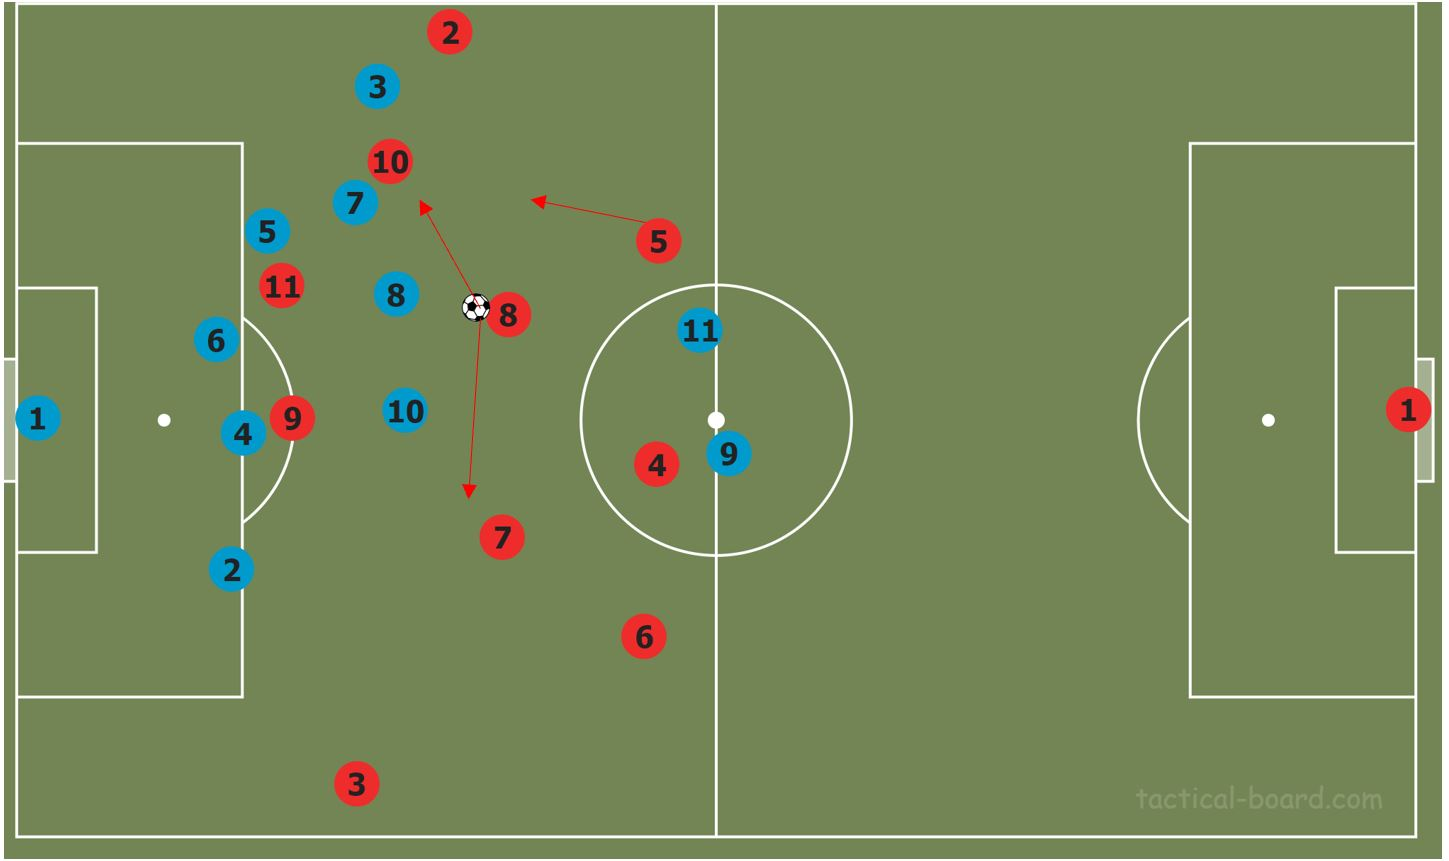 Bundesliga 2019/20: Mainz vs Eintracht Frankfurt- tactical analysis tactics